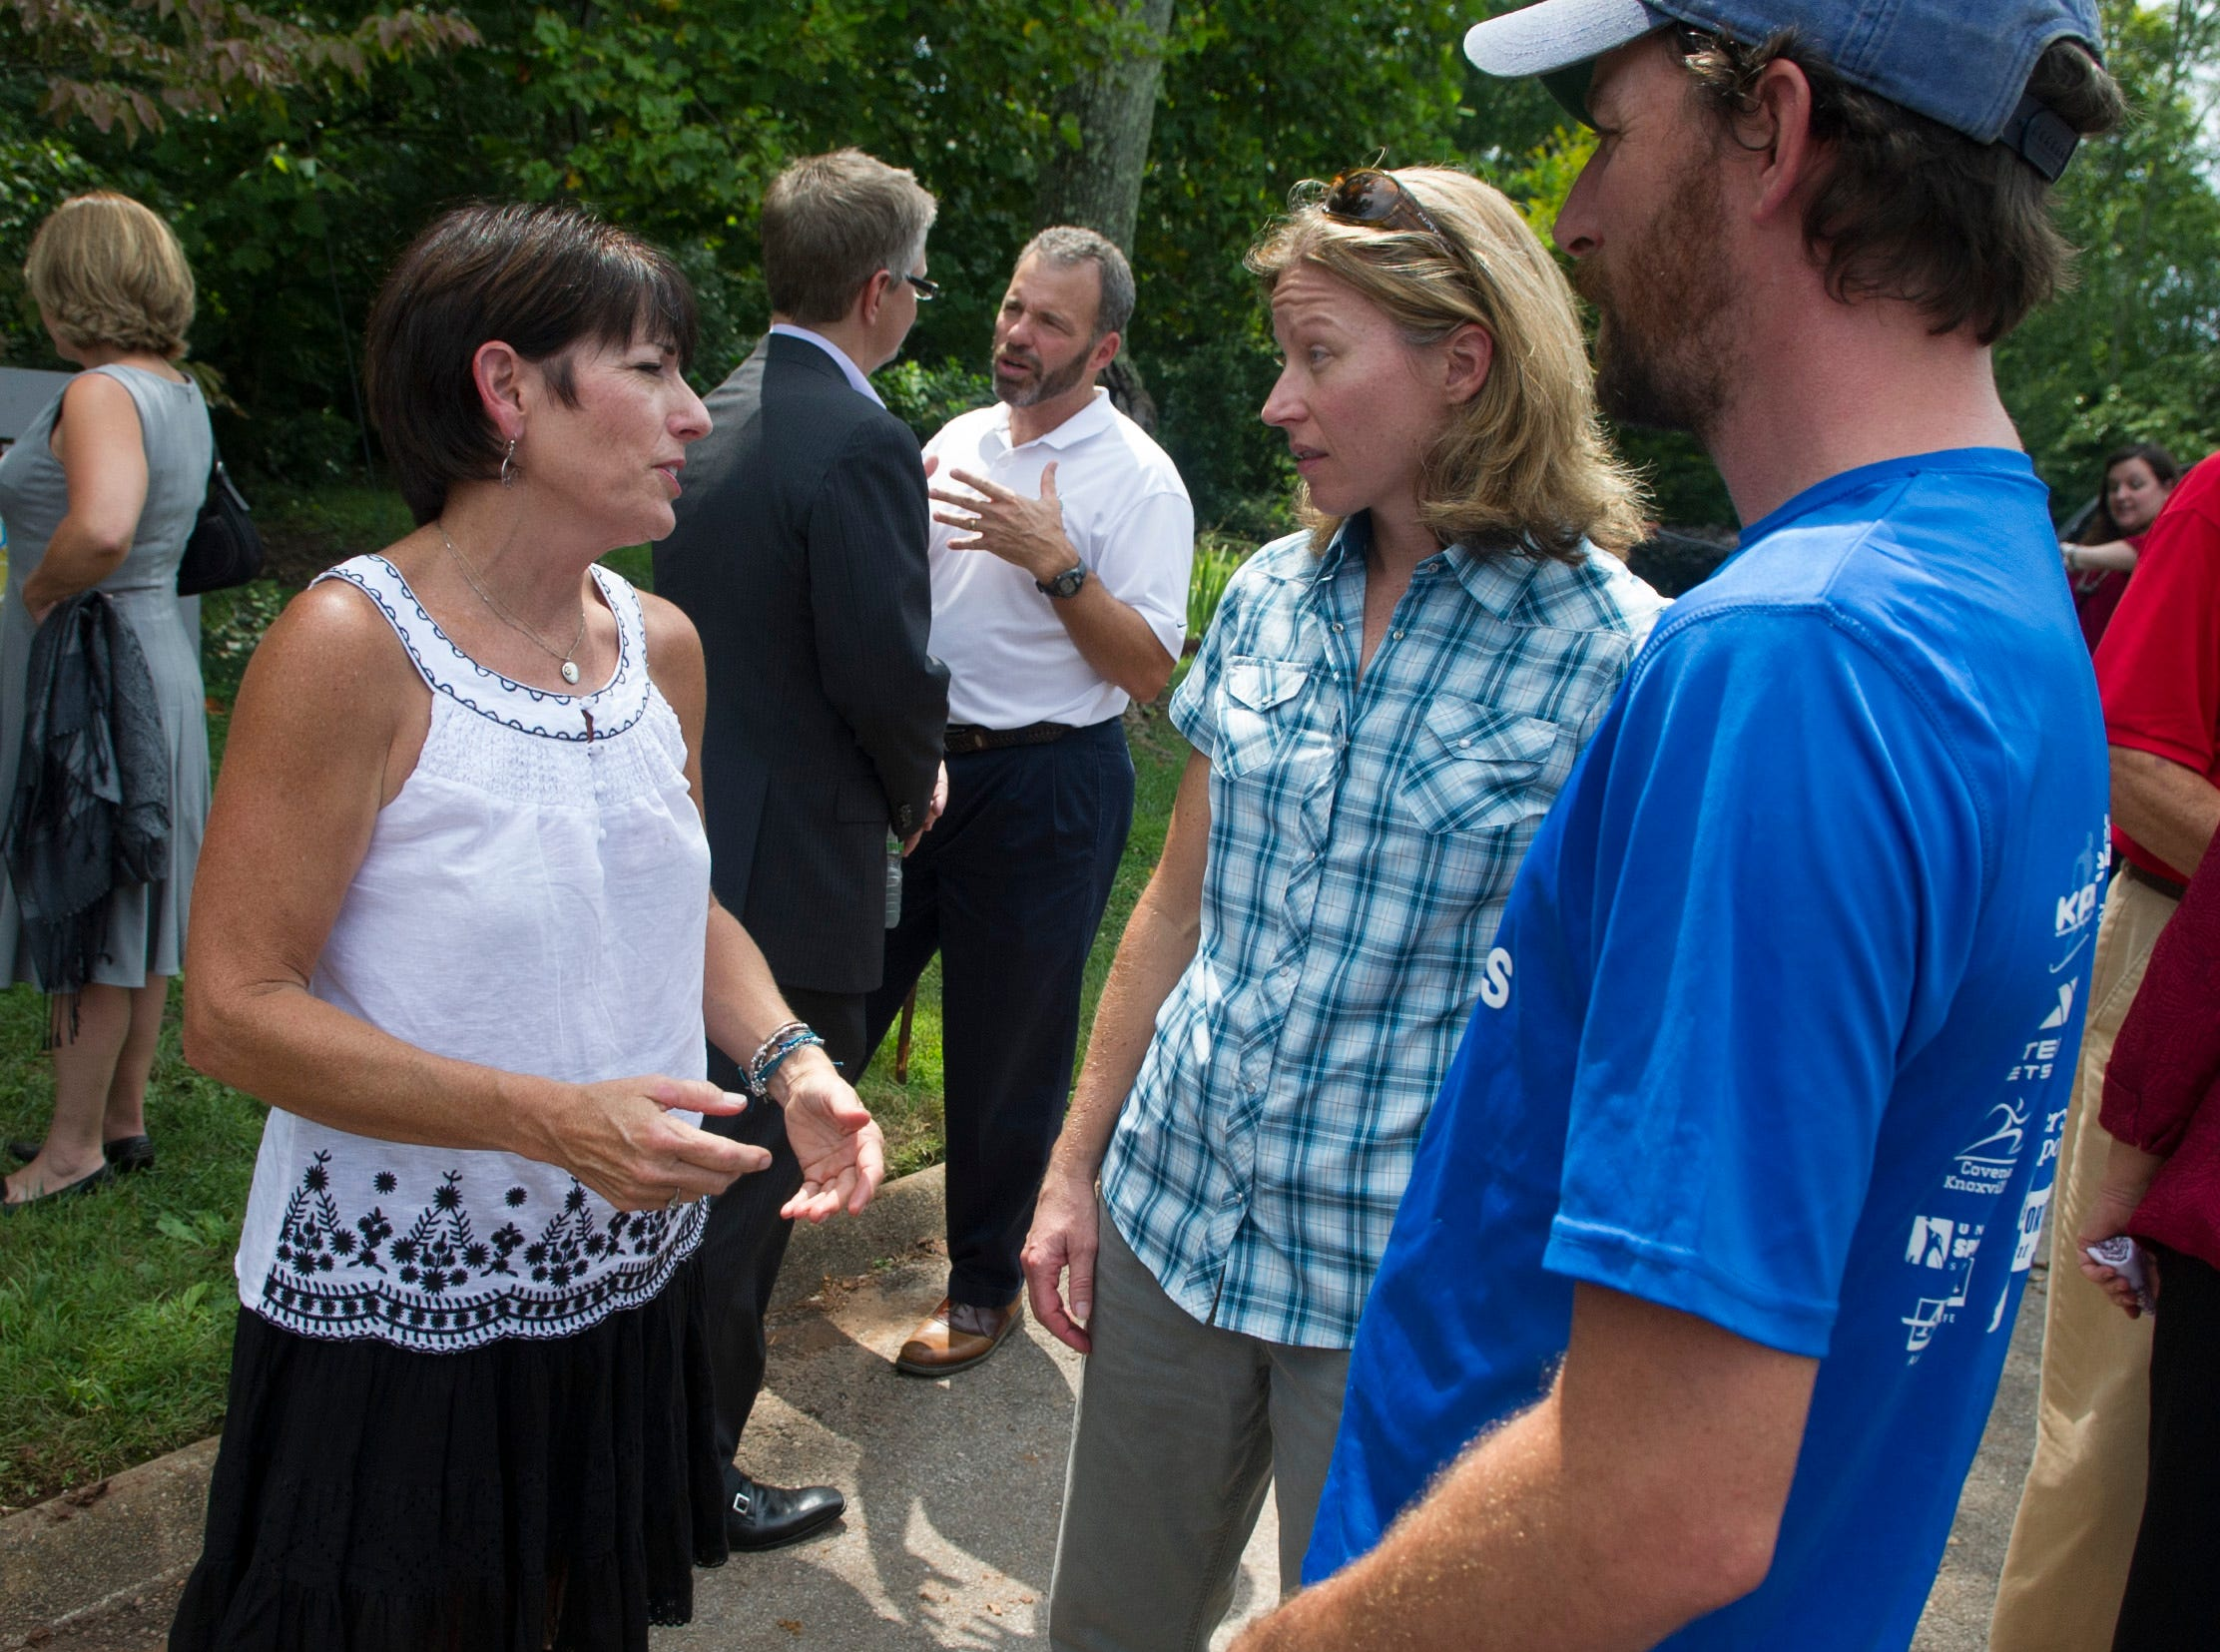 Legacy Parks Foundation executive director Carol Evans, left, talks with Appalachian Mountain Bike Club members Diane Reynolds, center, and Jason Stephens, right, near the Marj McClean entrance to the South Loop Trail on View Park Drive in South Knoxville Tuesday, Aug. 14, 2012.